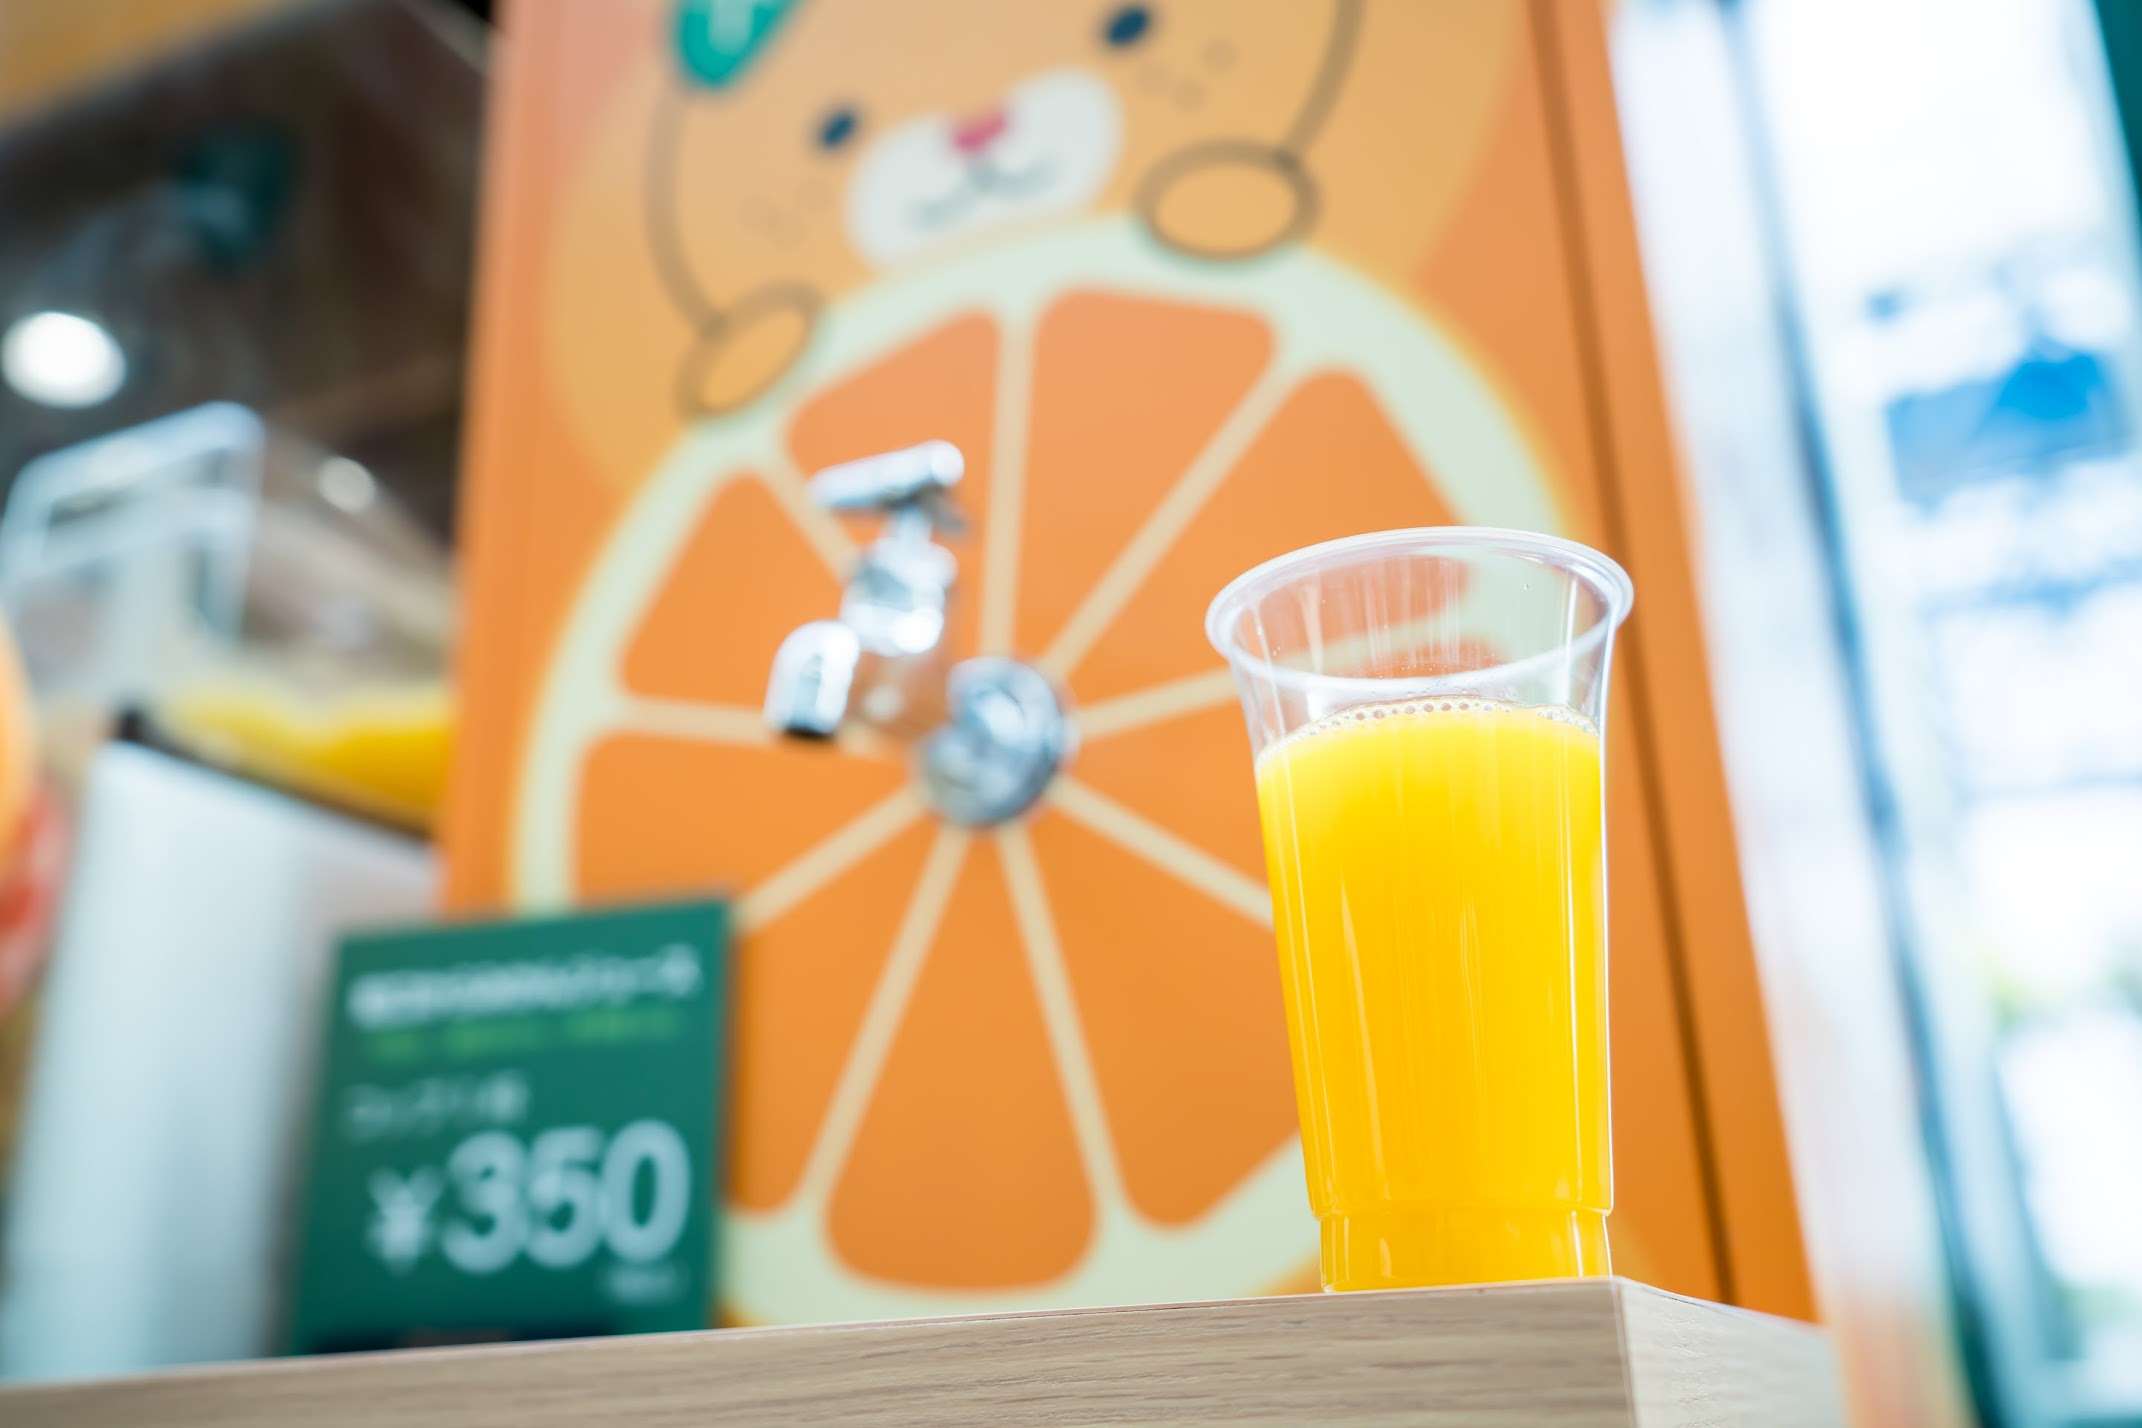 Matsuyama Airport Orange Juice Server5